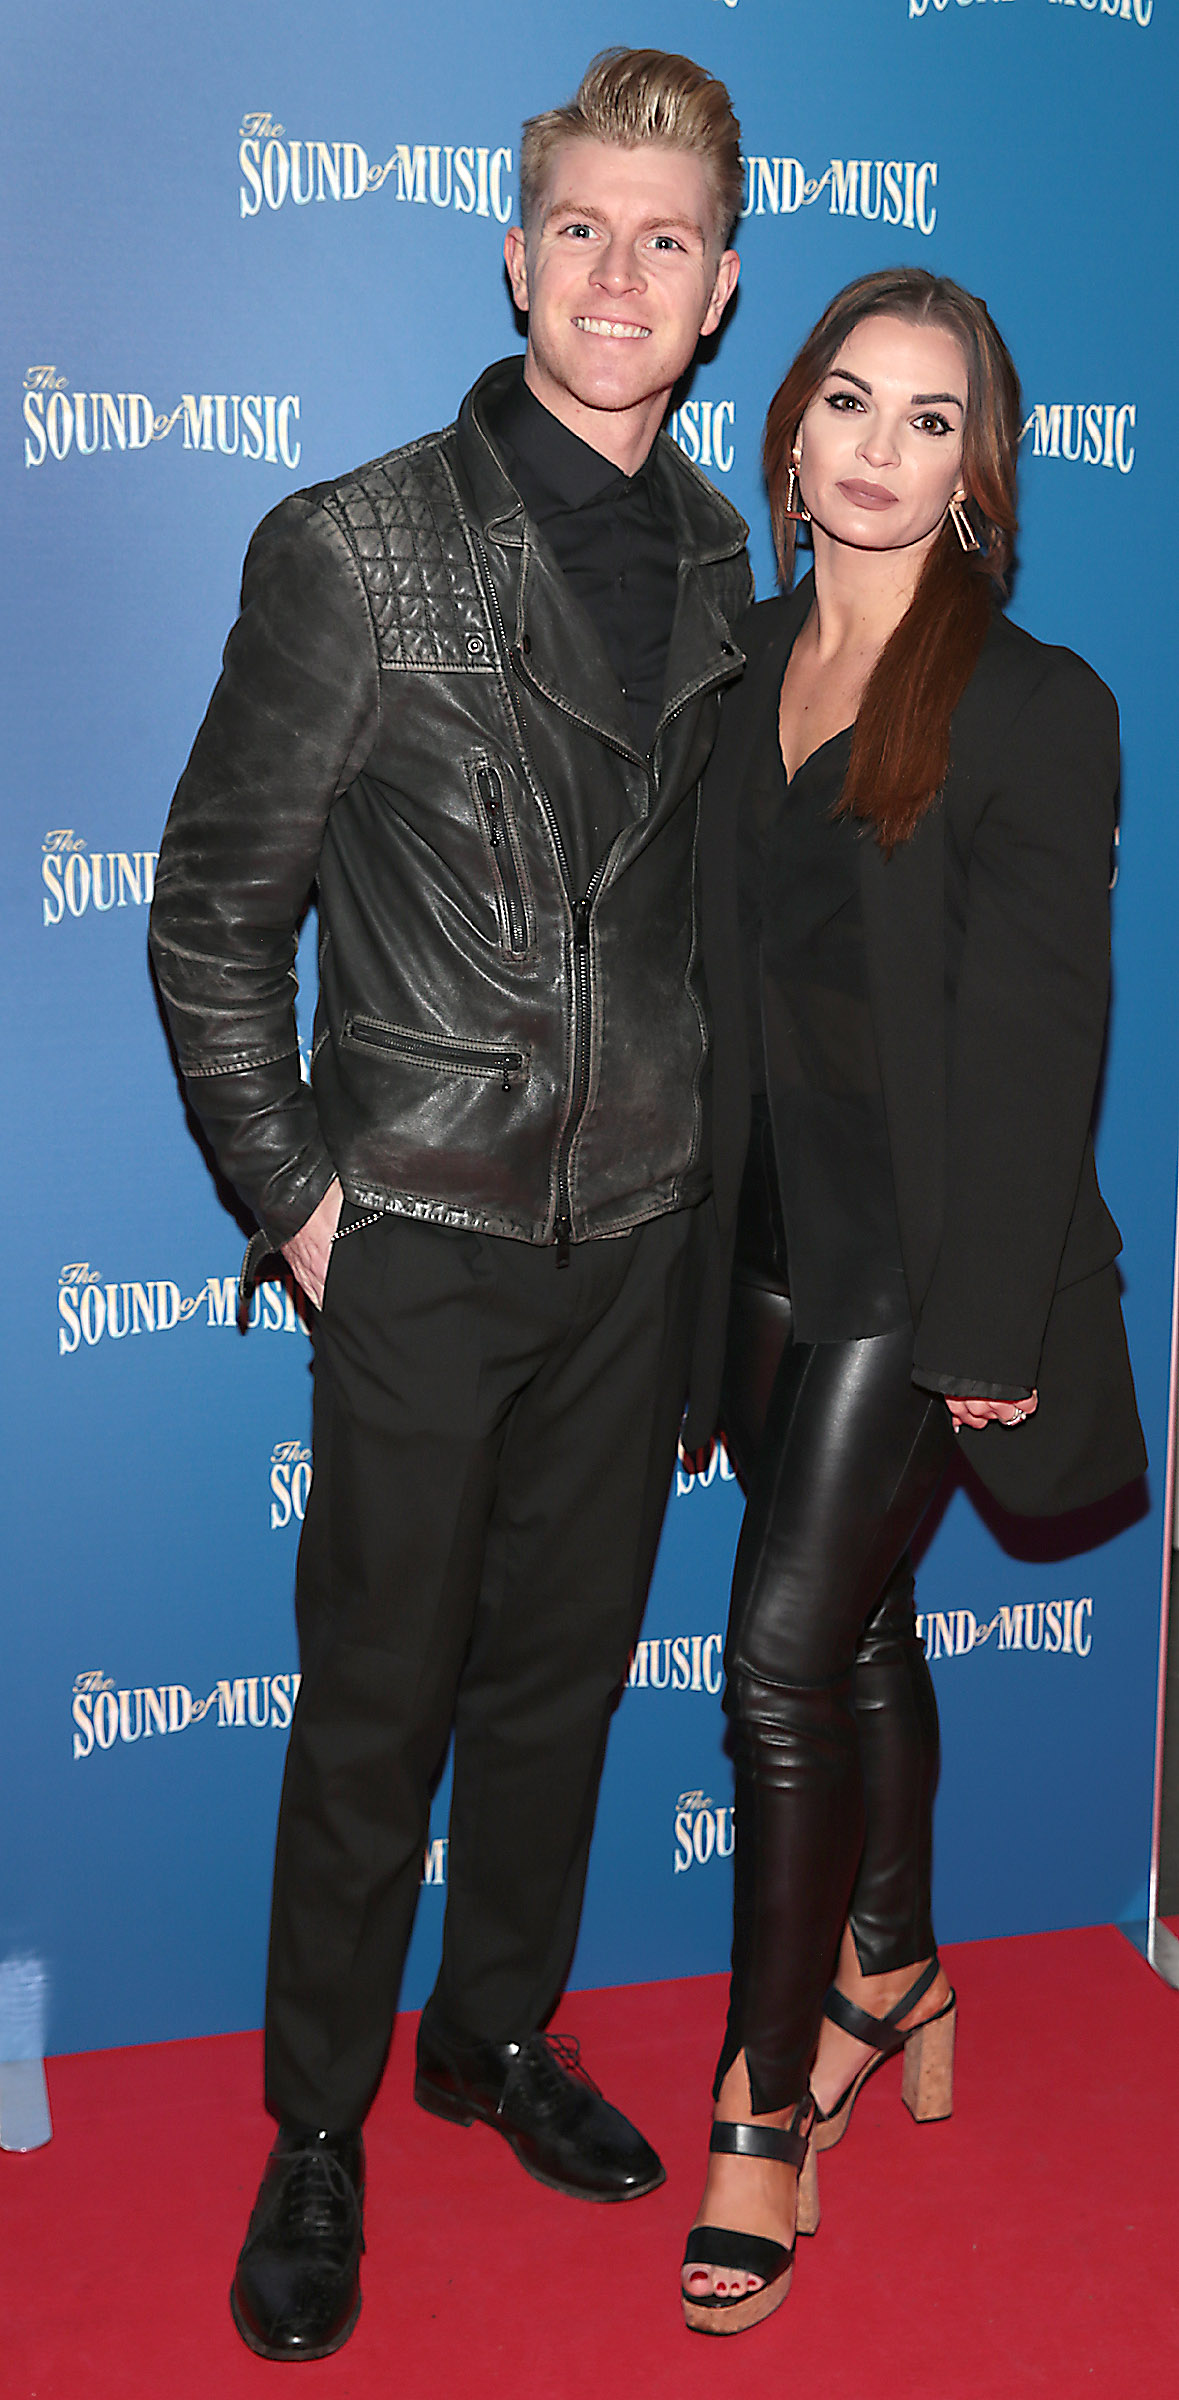 Stephen Vincent and Klyee Vincent pictured at the opening night of The Sound of Music at the Bord Gais Energy Theatre, Dublin. Pic Brian McEvoy